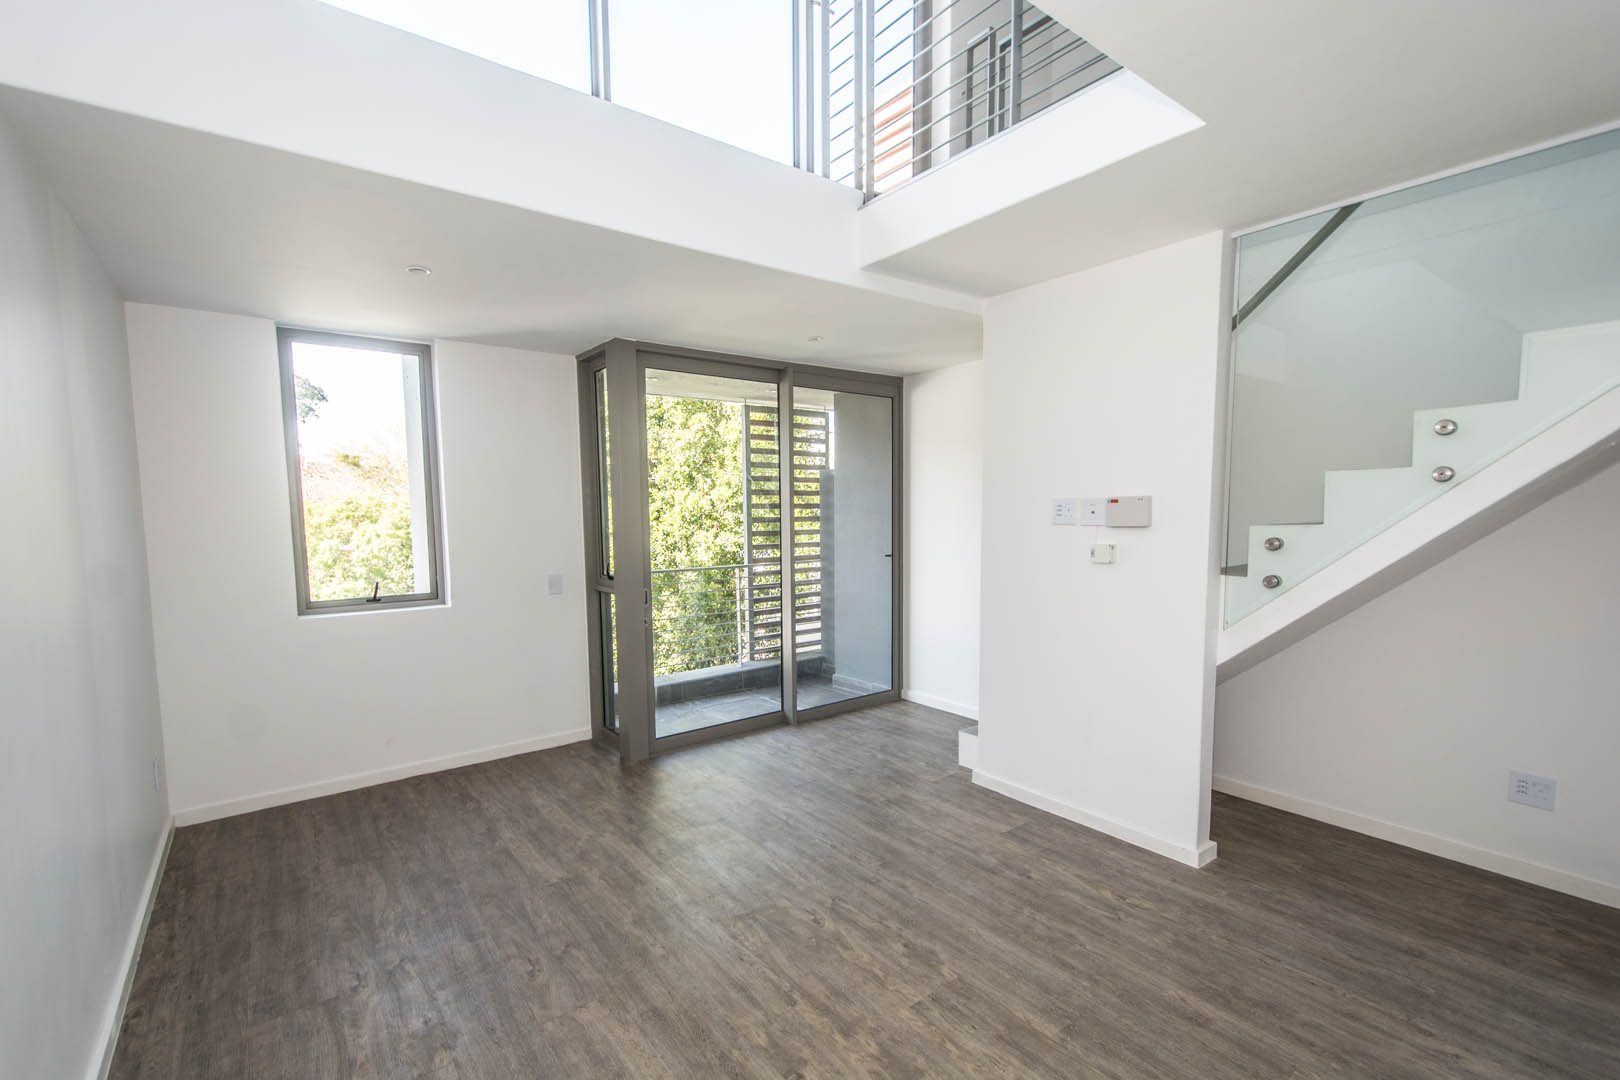 2 Bedroom Apartment / Flat to Rent in Harfield Village